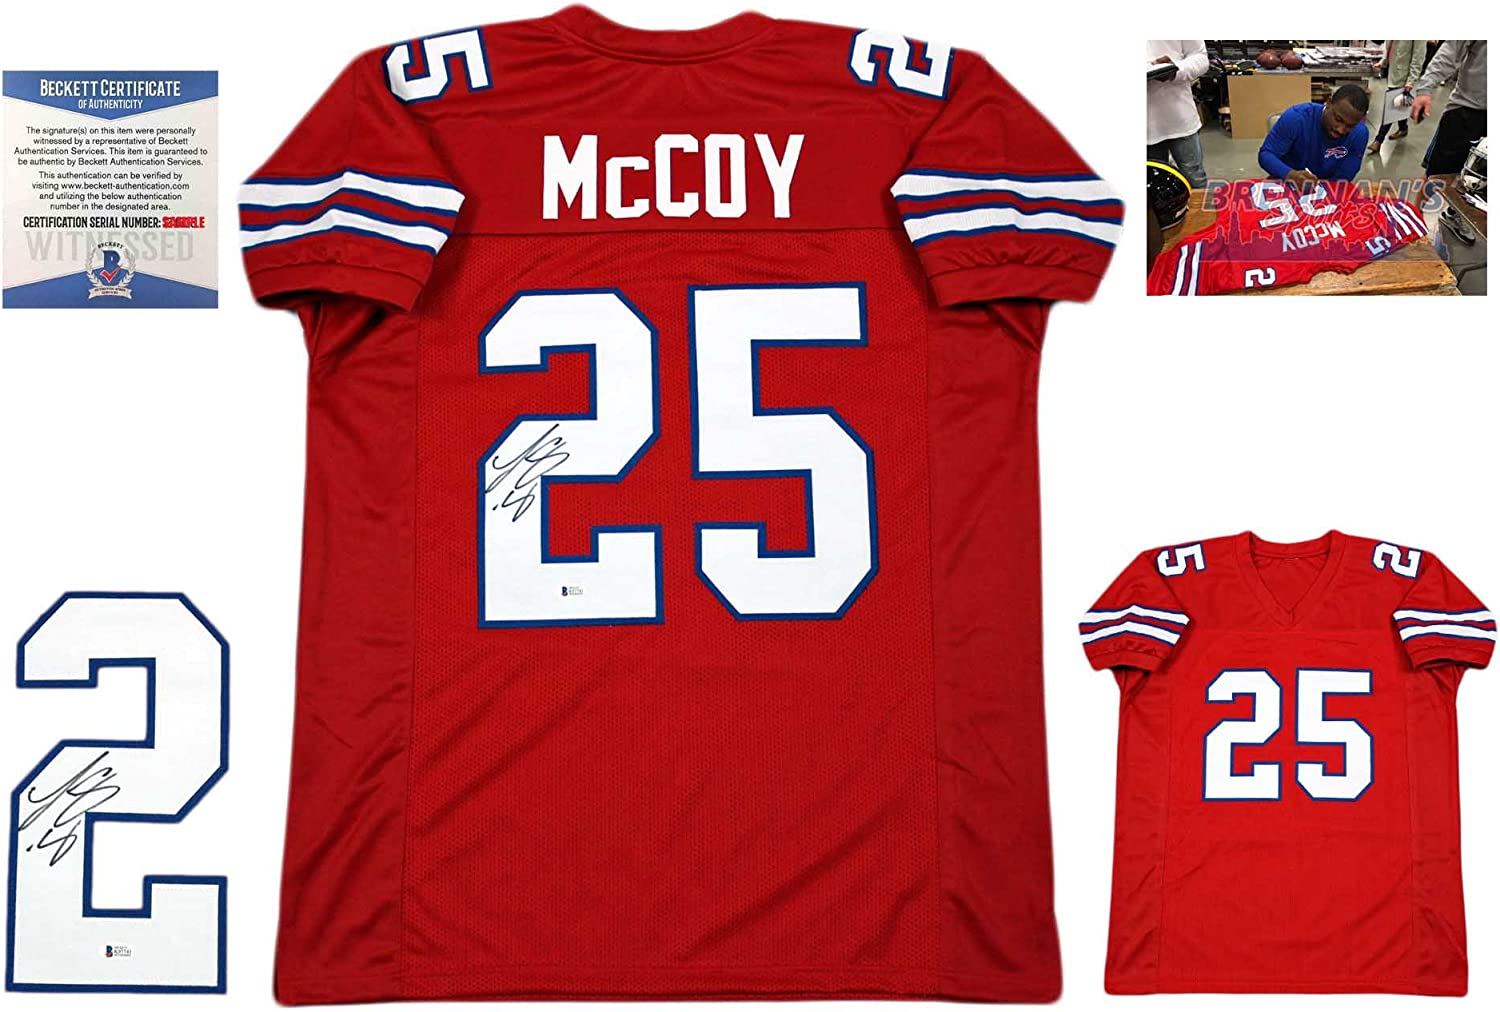 LeSean McCoy Autographed SIGNED Jersey - Beckett Authentic - Red ...